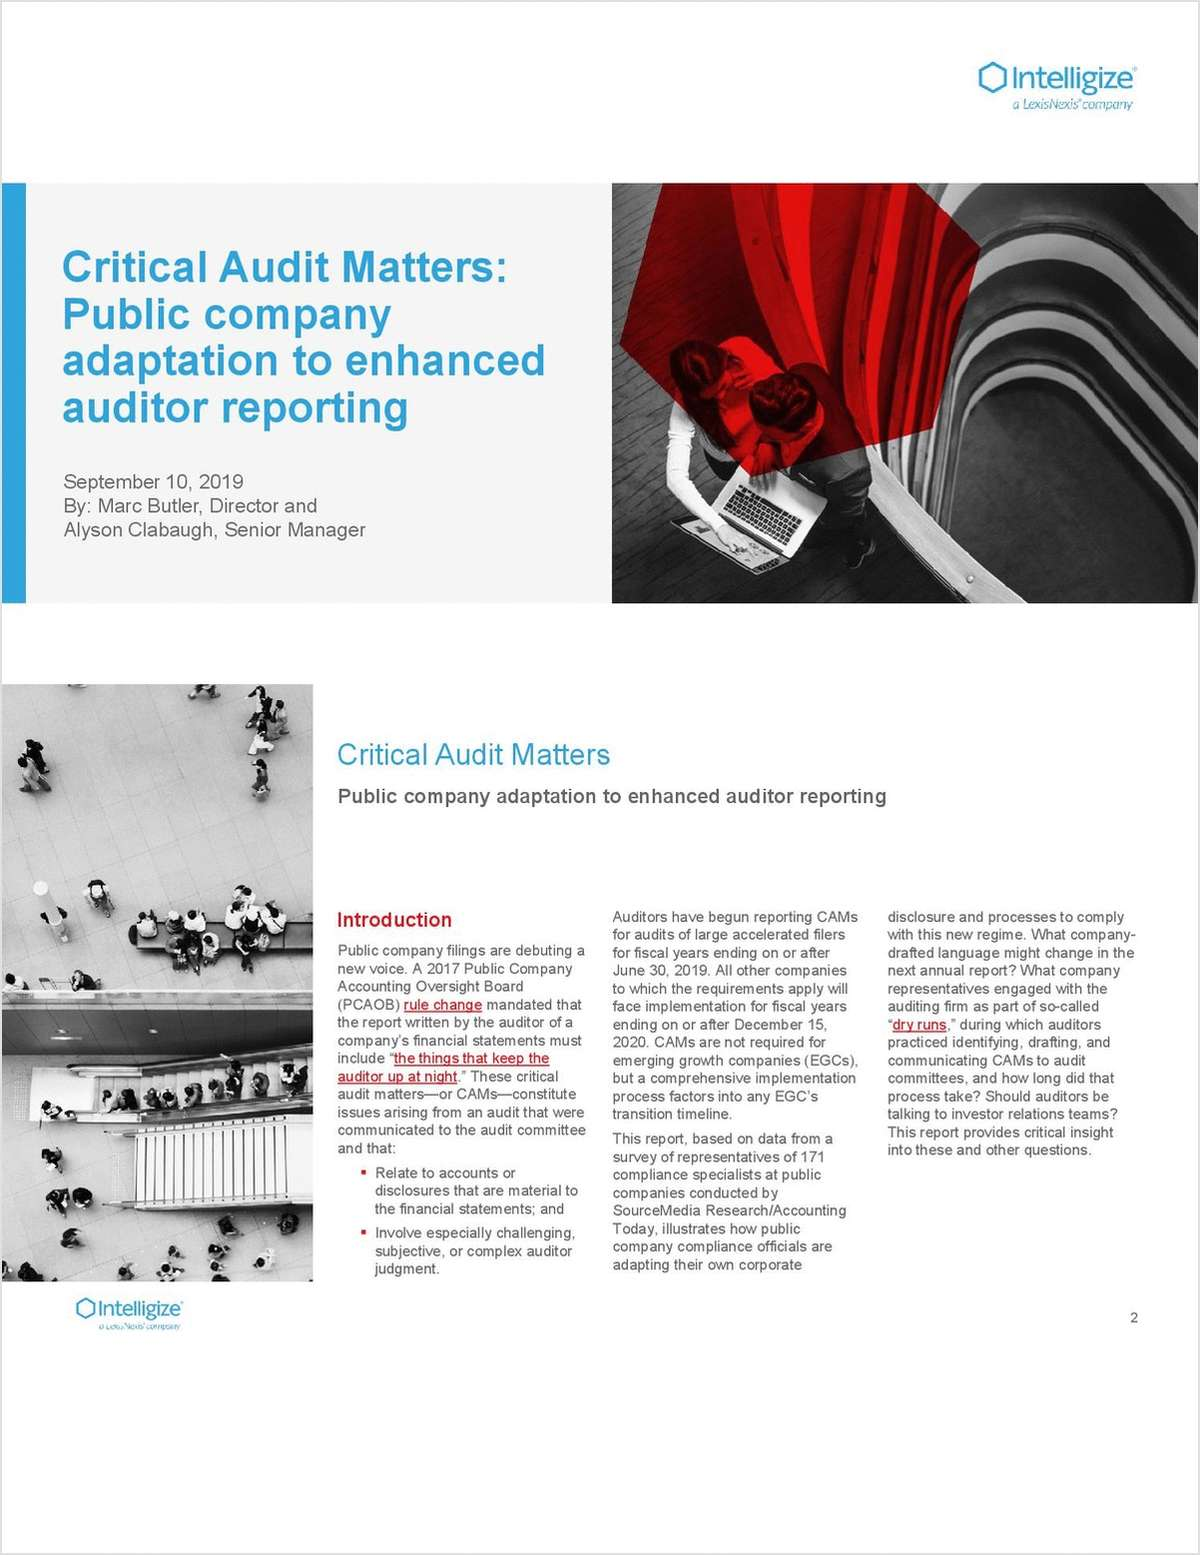 Critical Audit Matters: Public Company Adaptation to Enhanced Auditor Reporting